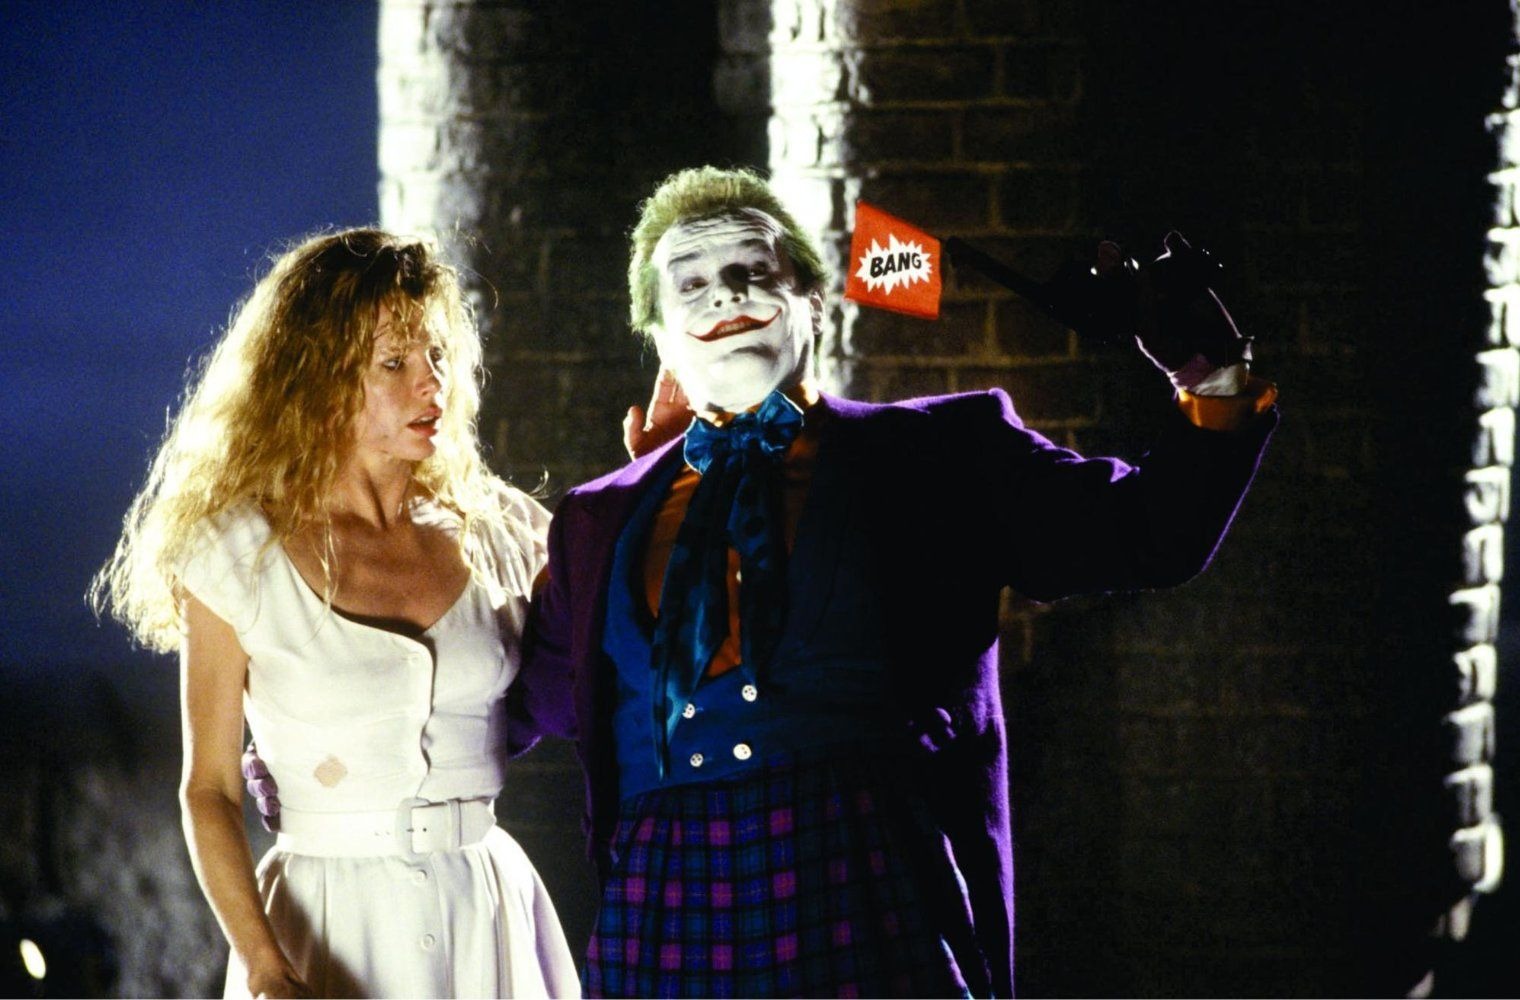 batman 1989 photo gallery imdb dc movies and tv shows batman photo gallery imdb jack nicholson imdb